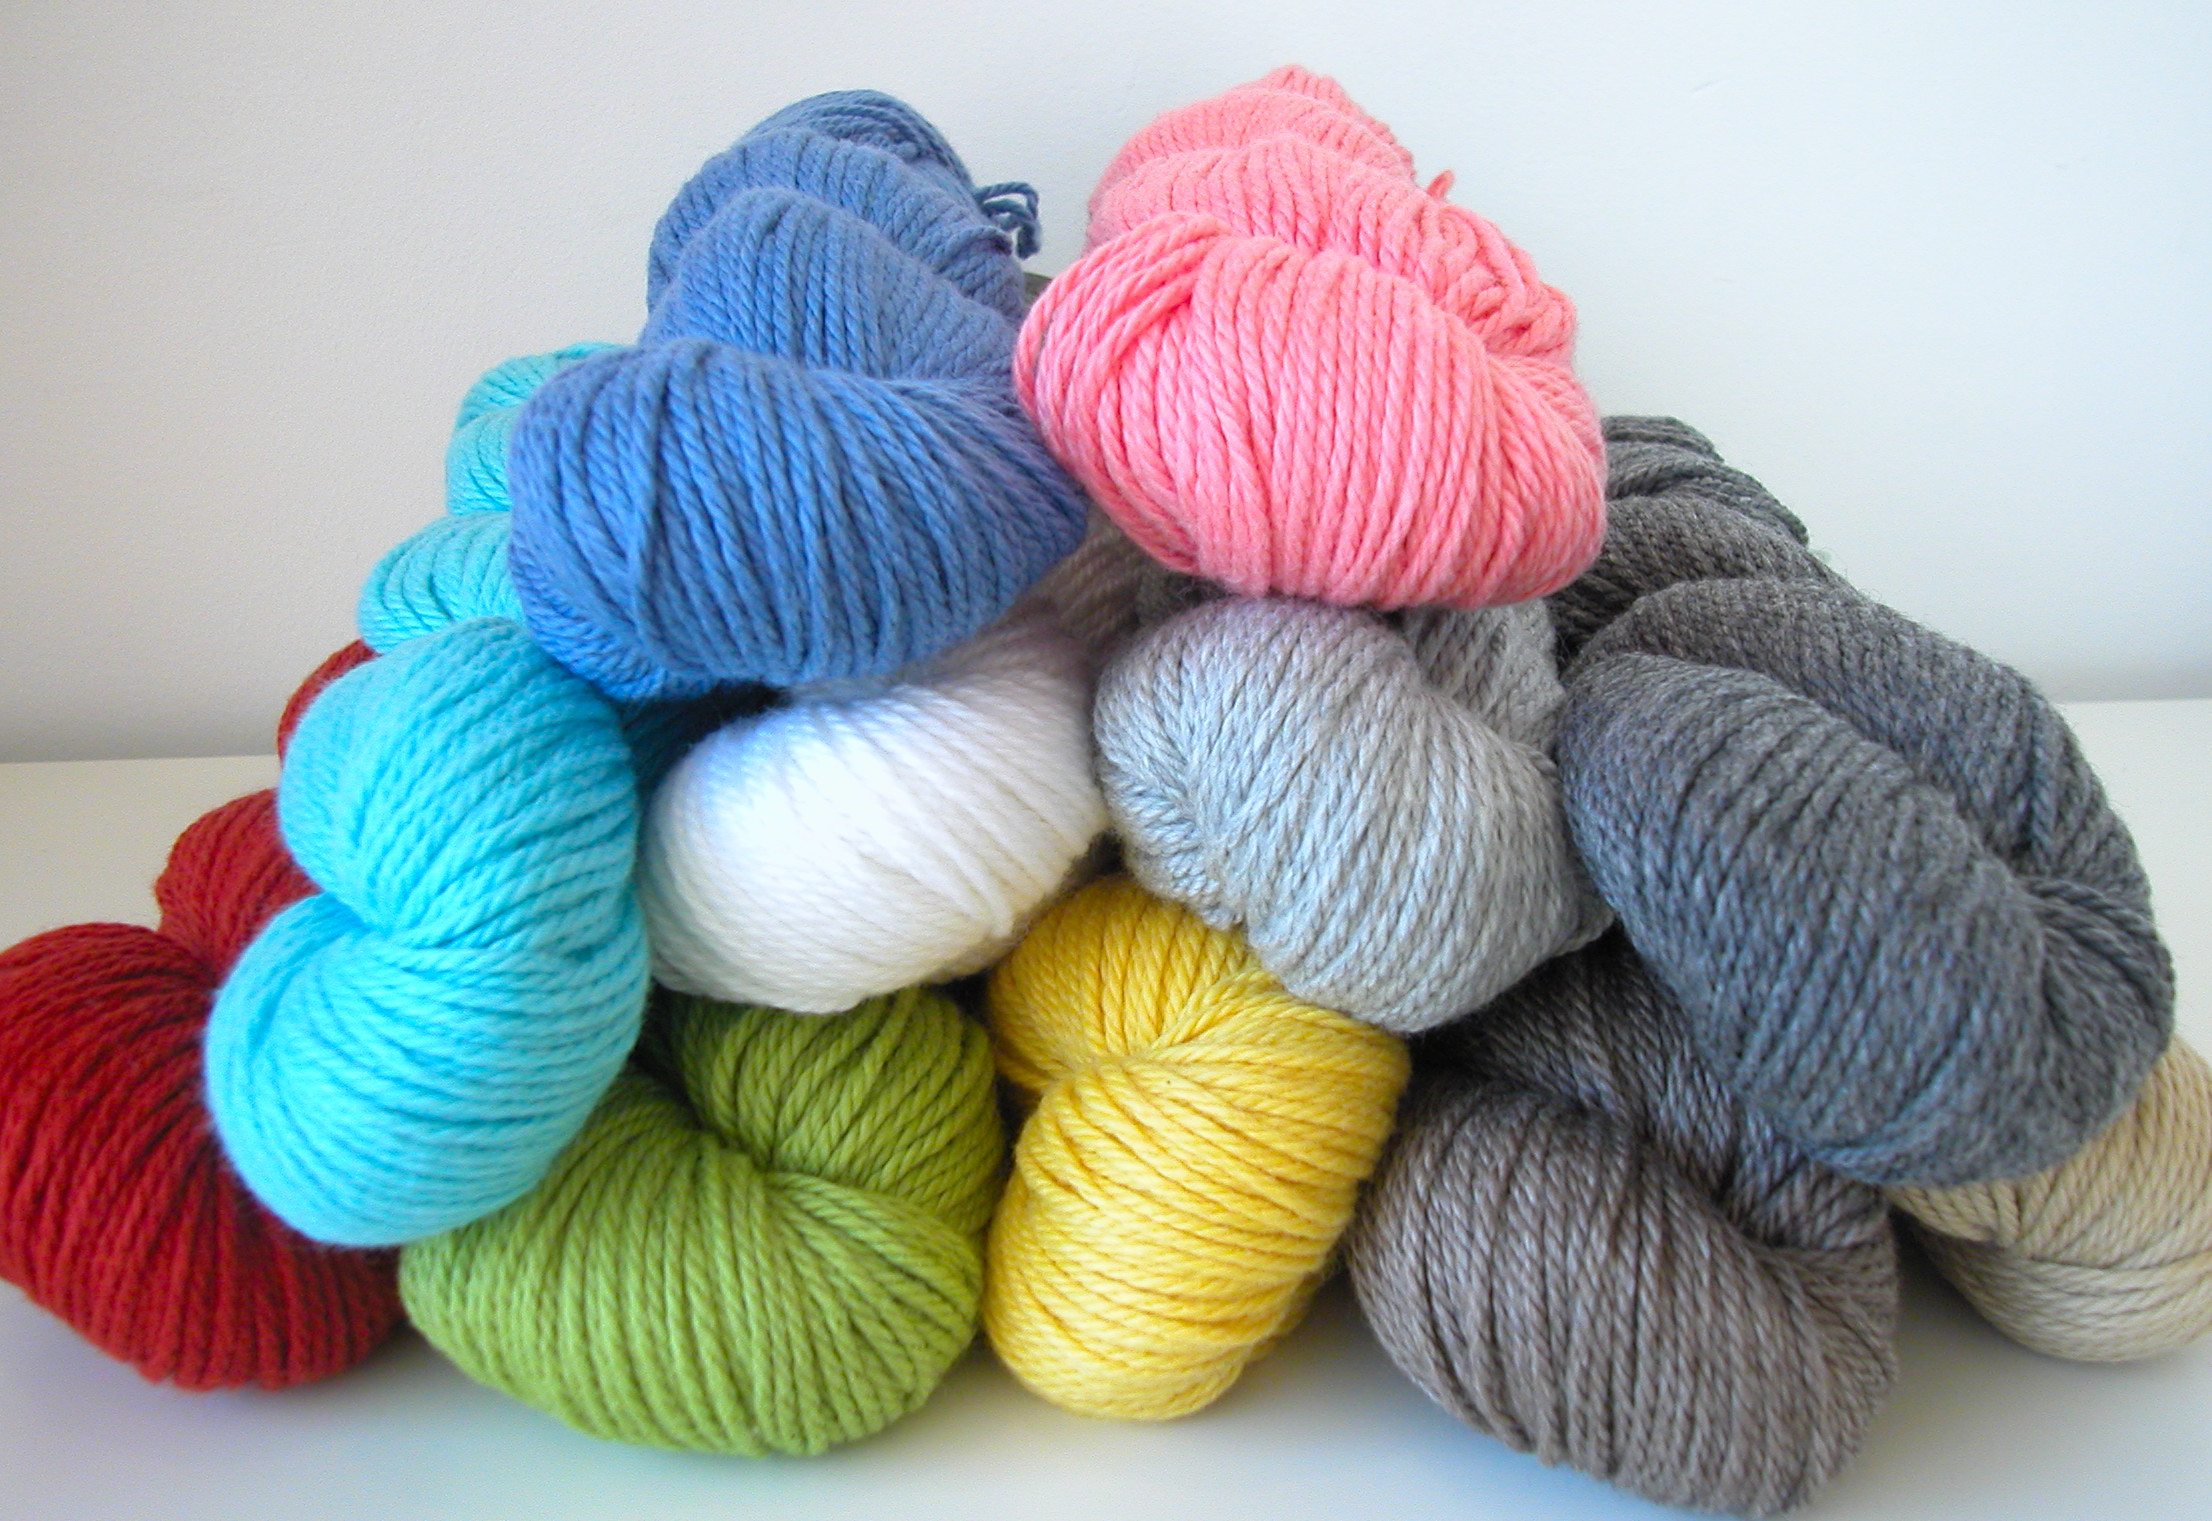 Yarn Knitting : Knitting Needles And Yarn A brand new yarn to the knit